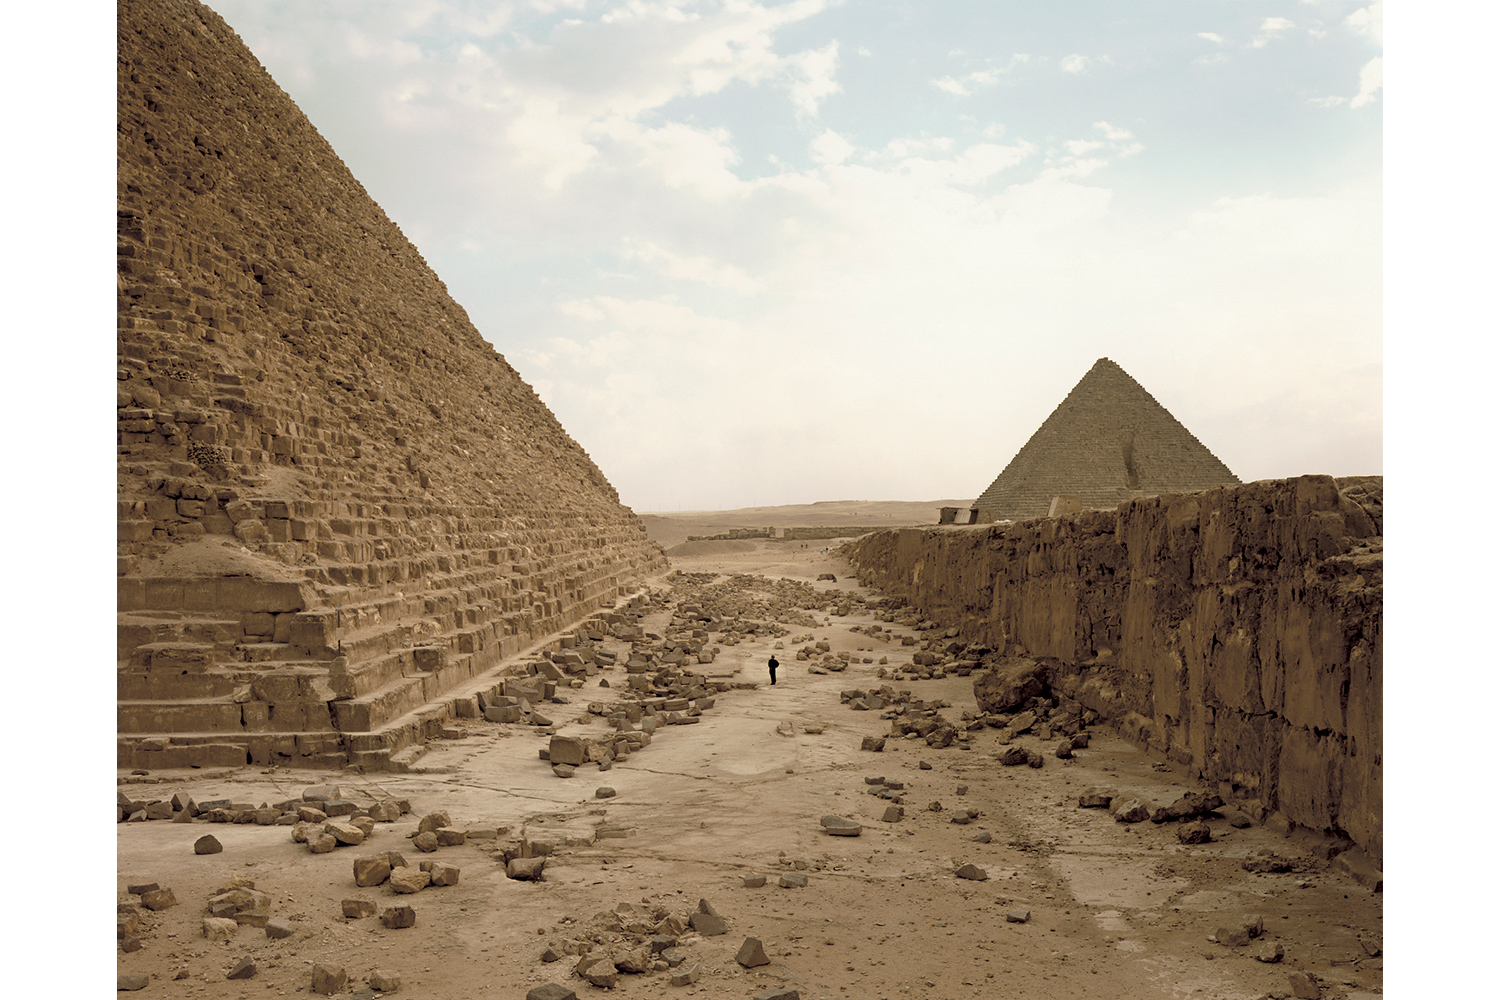 White Man Contemplating Pyramids, Giza, Egypt, 1989